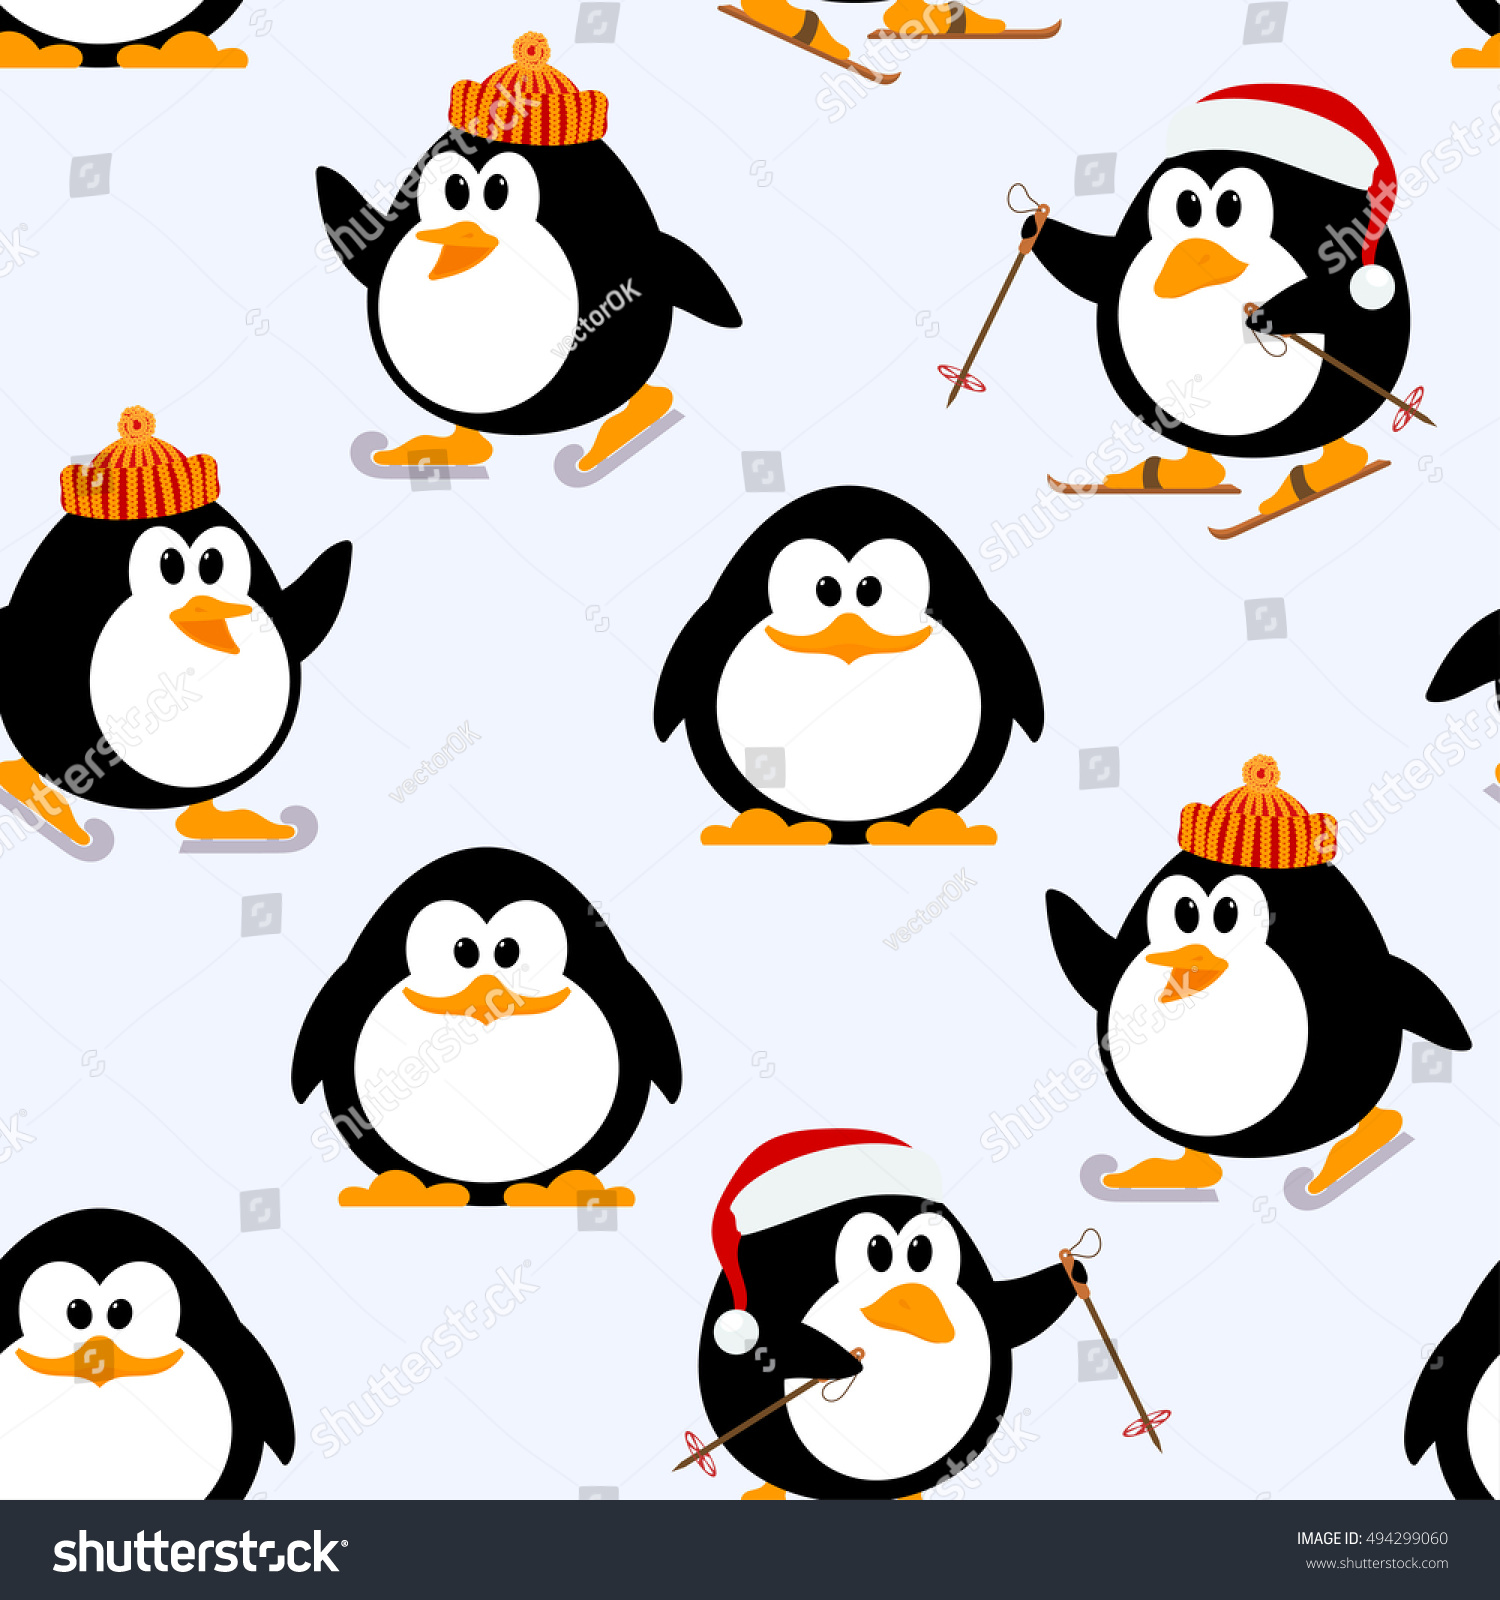 Christmas Winter Knitted Pattern With Penguins Auto Electrical Connectors Wiring Ford Harness Wpt727 Vector Seamless Young Playing Stock